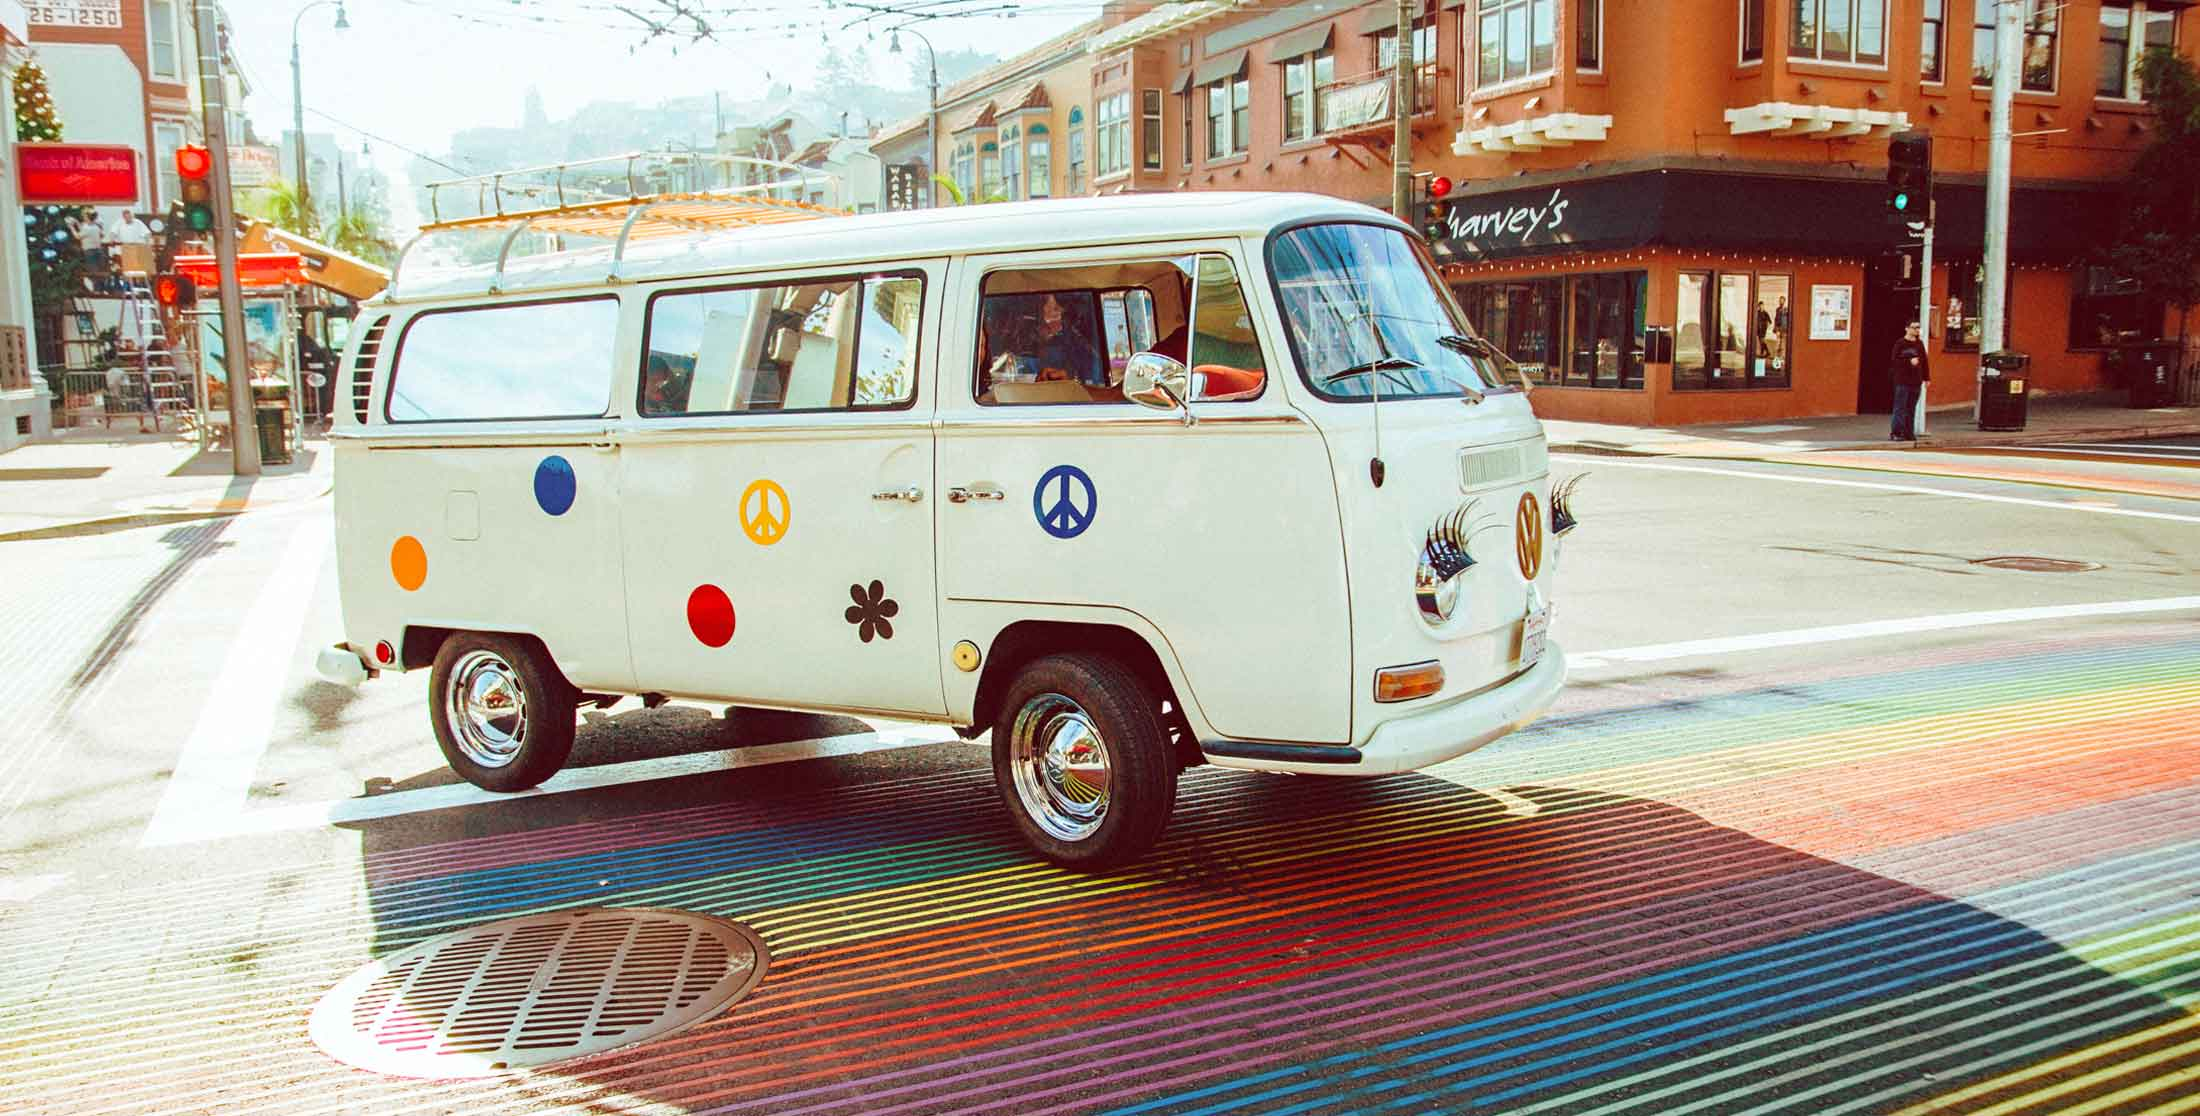 White classic Volkswagen camper bus adorned with hippie decals on a colorful street in San Fransisco